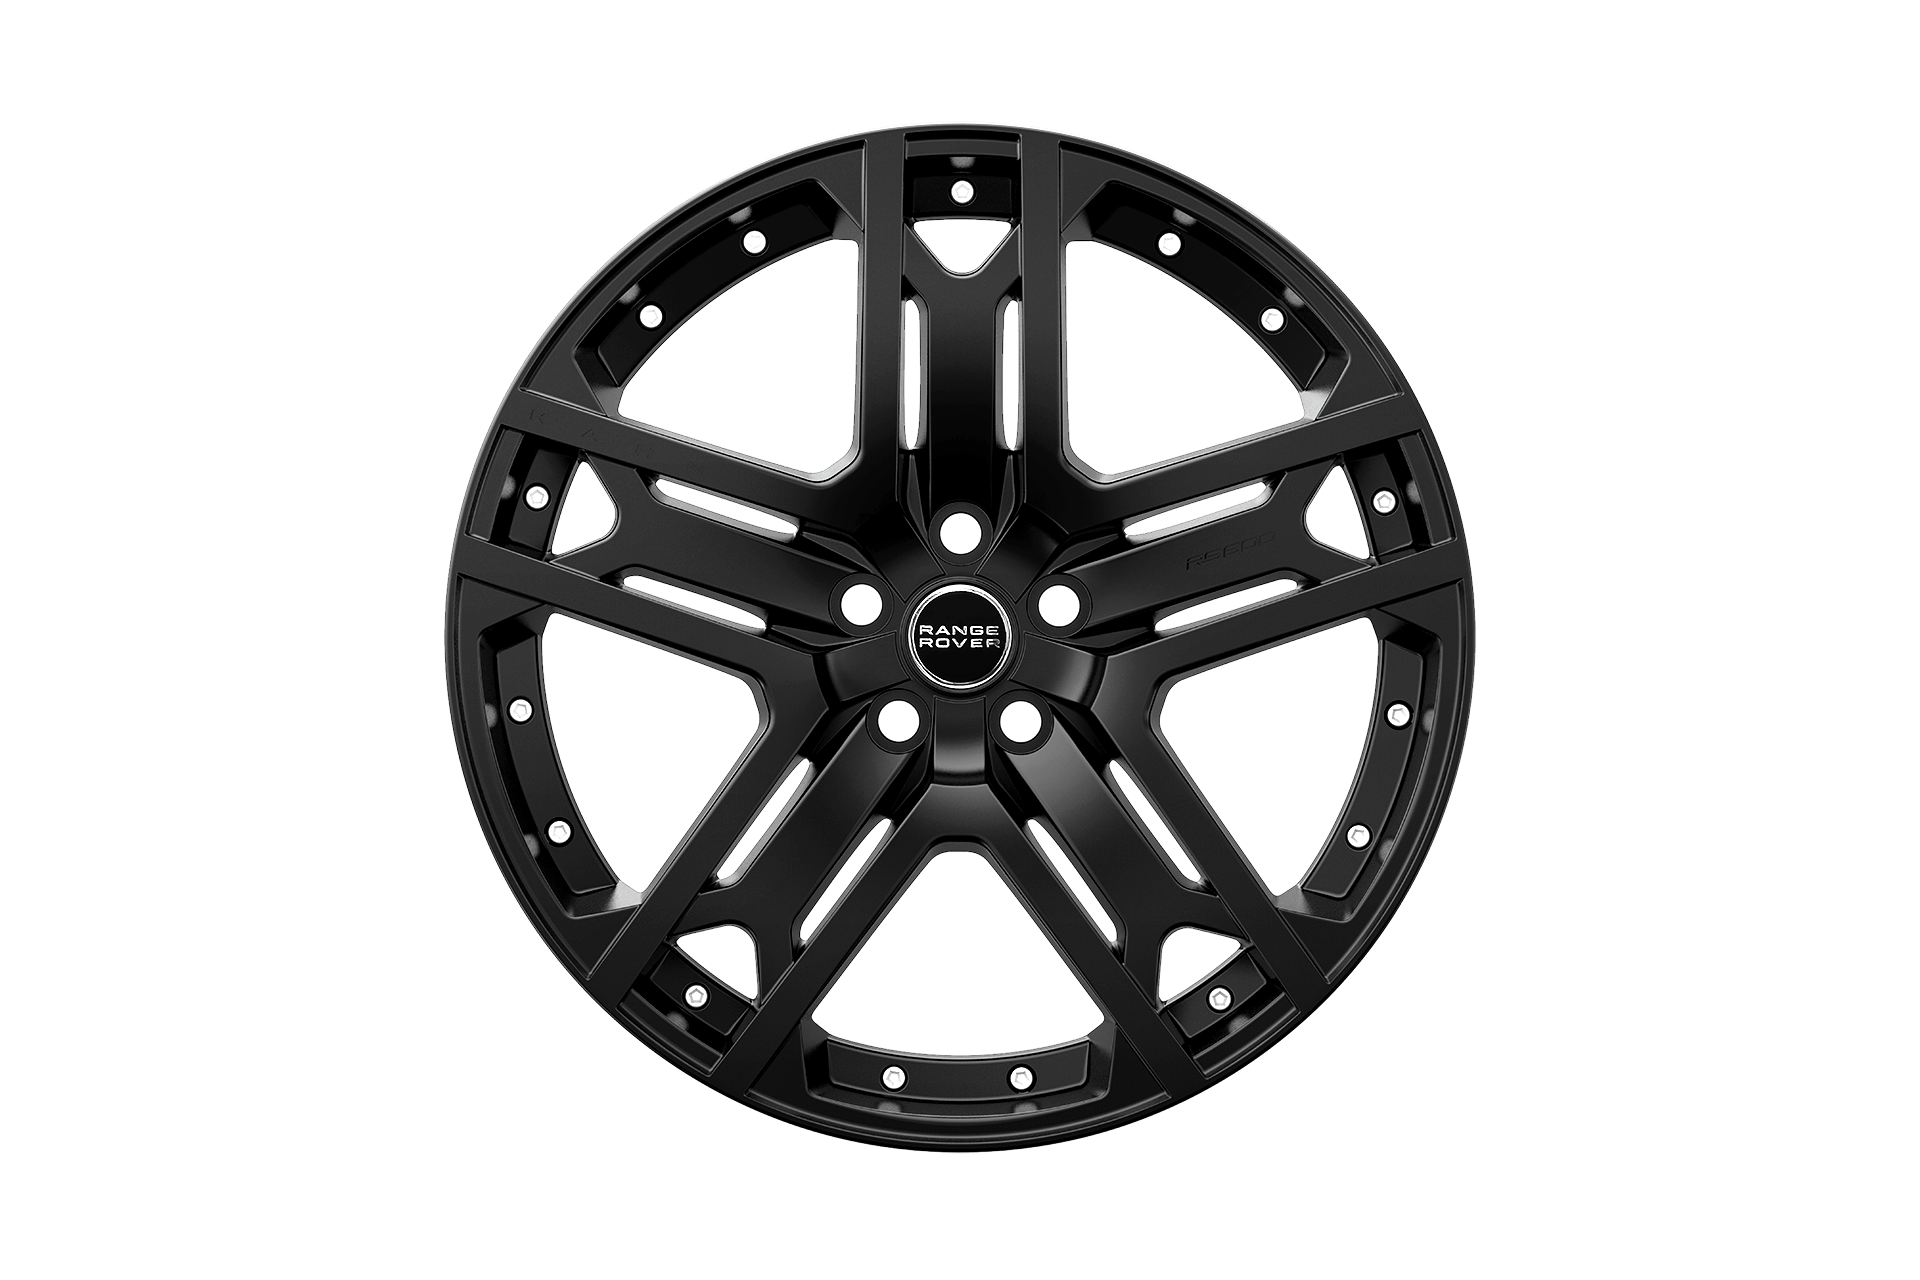 Range Rover Sport (2015-2018) Svr Rs600 Light Alloy Wheels by Kahn - Image 3259